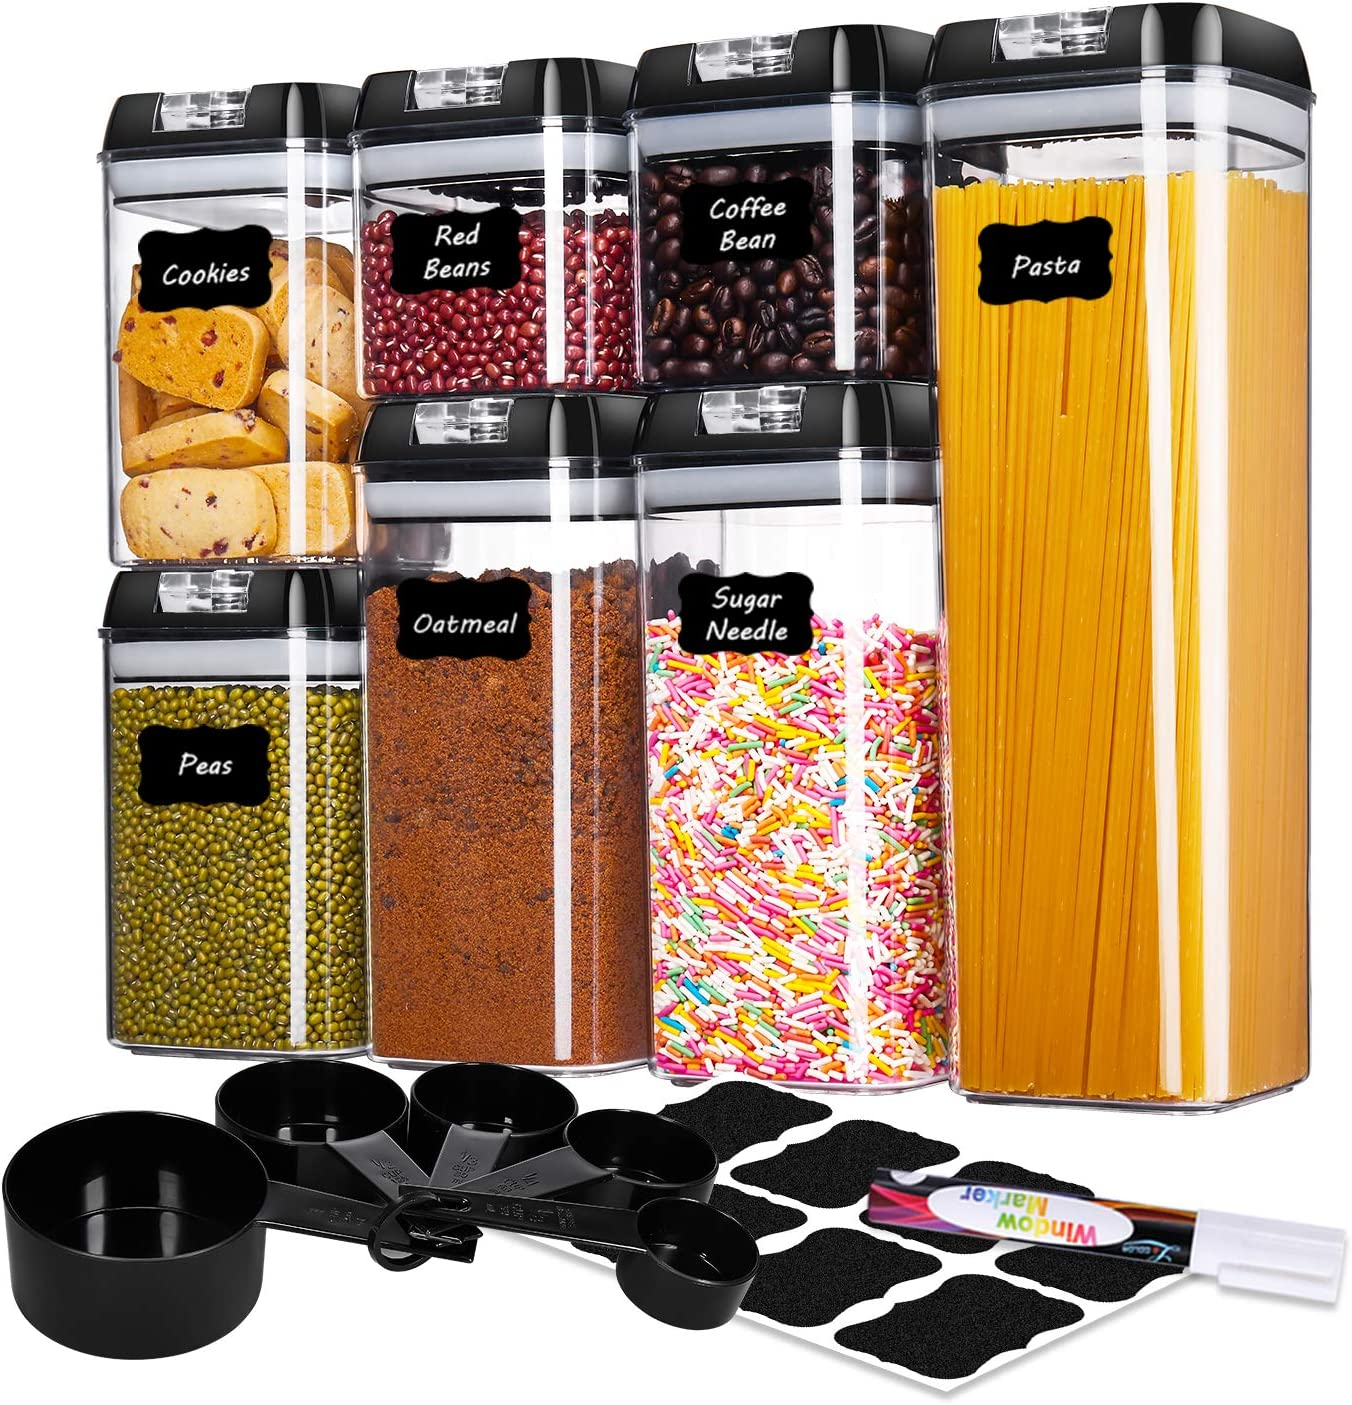 ME.FAN Food Storage Containers [Set of 7] Cereal Storage Containers Airtight Seal Pot - Kitchen Cabinet Organization with 5 Set Measuring Cups 24 Chalkboard labels & Pen (Black)